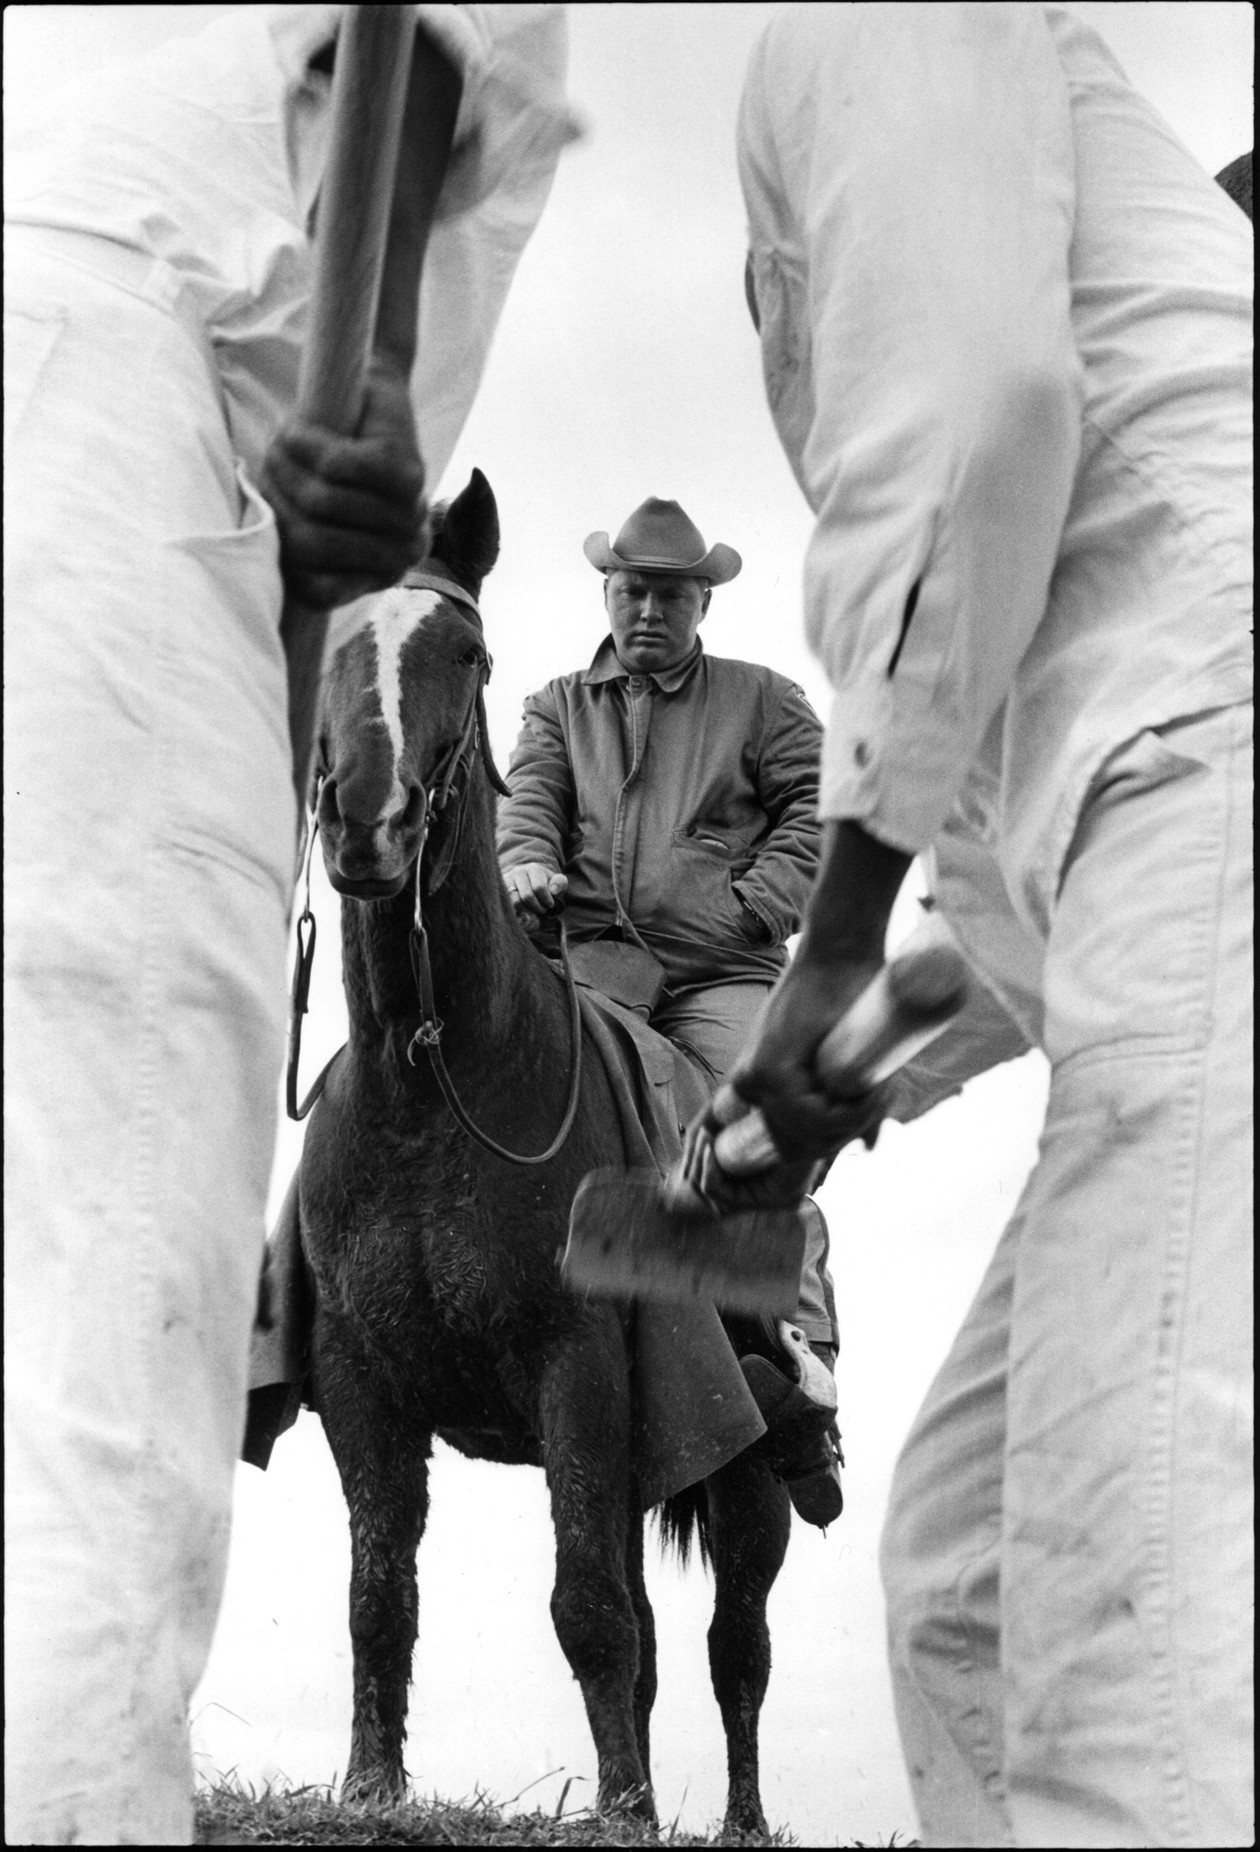 Boss (1967-1968) by Danny Lyon